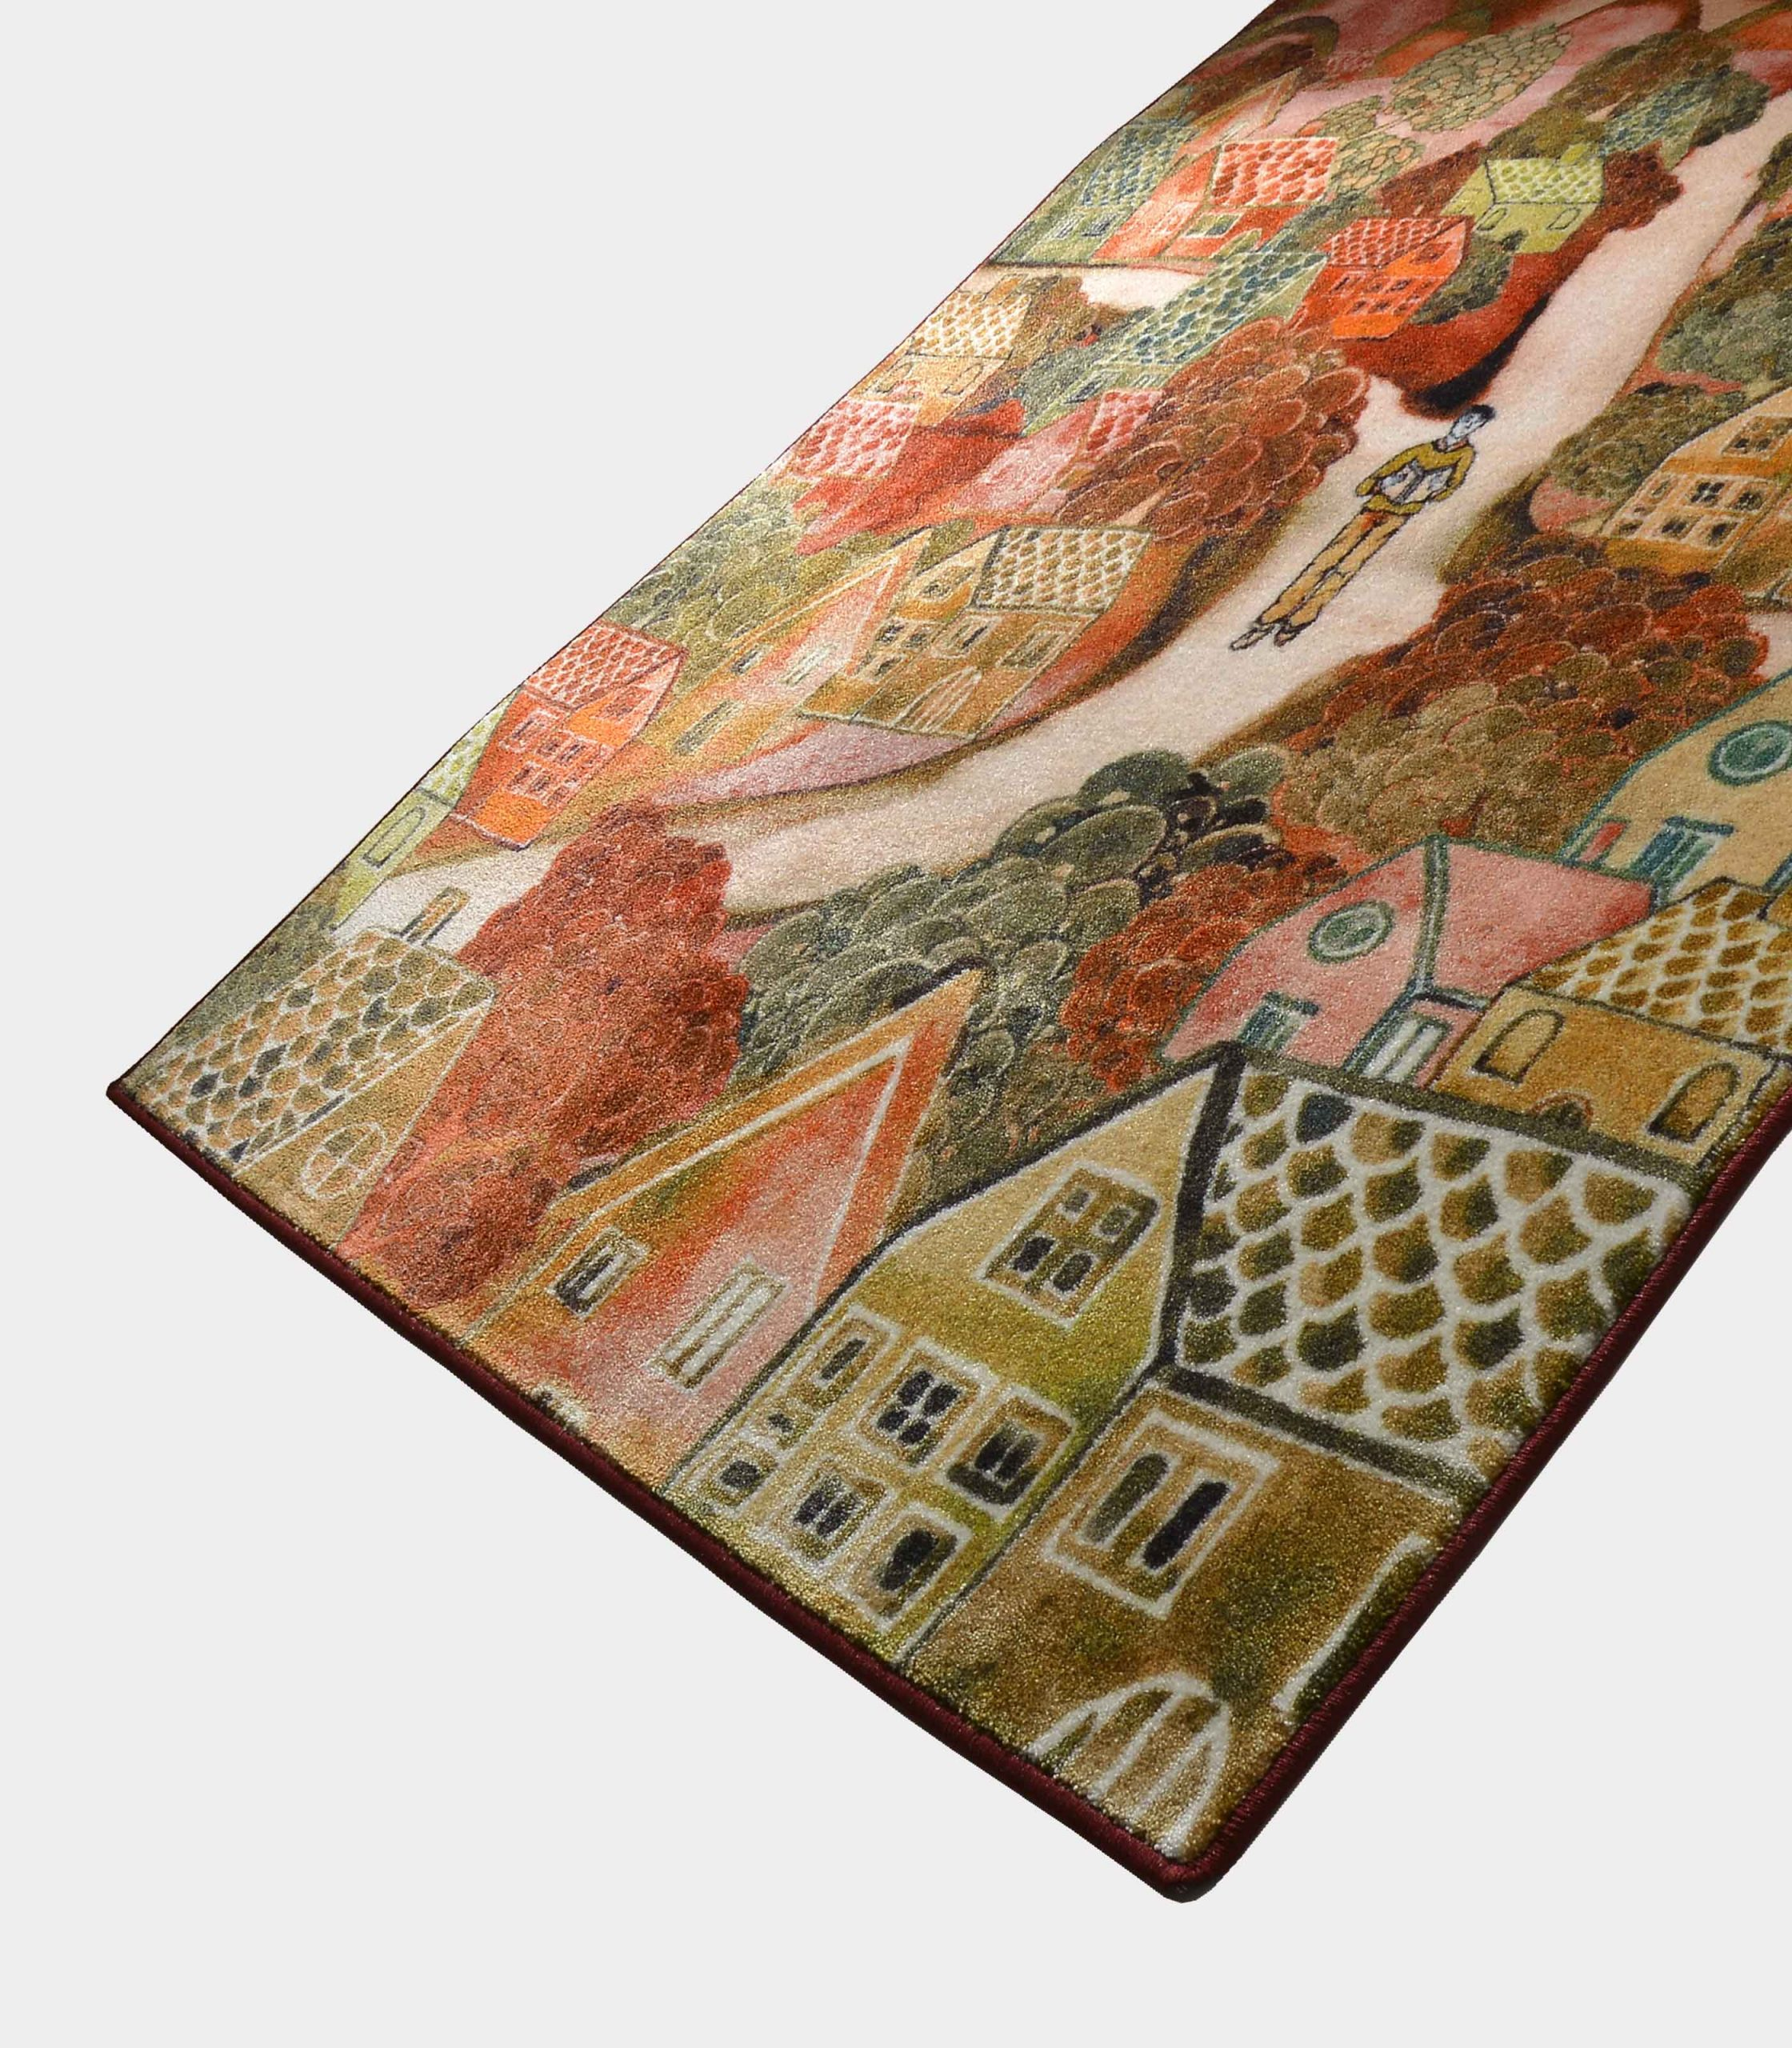 red notturno fabric rug with printed designs loopo milano design FD